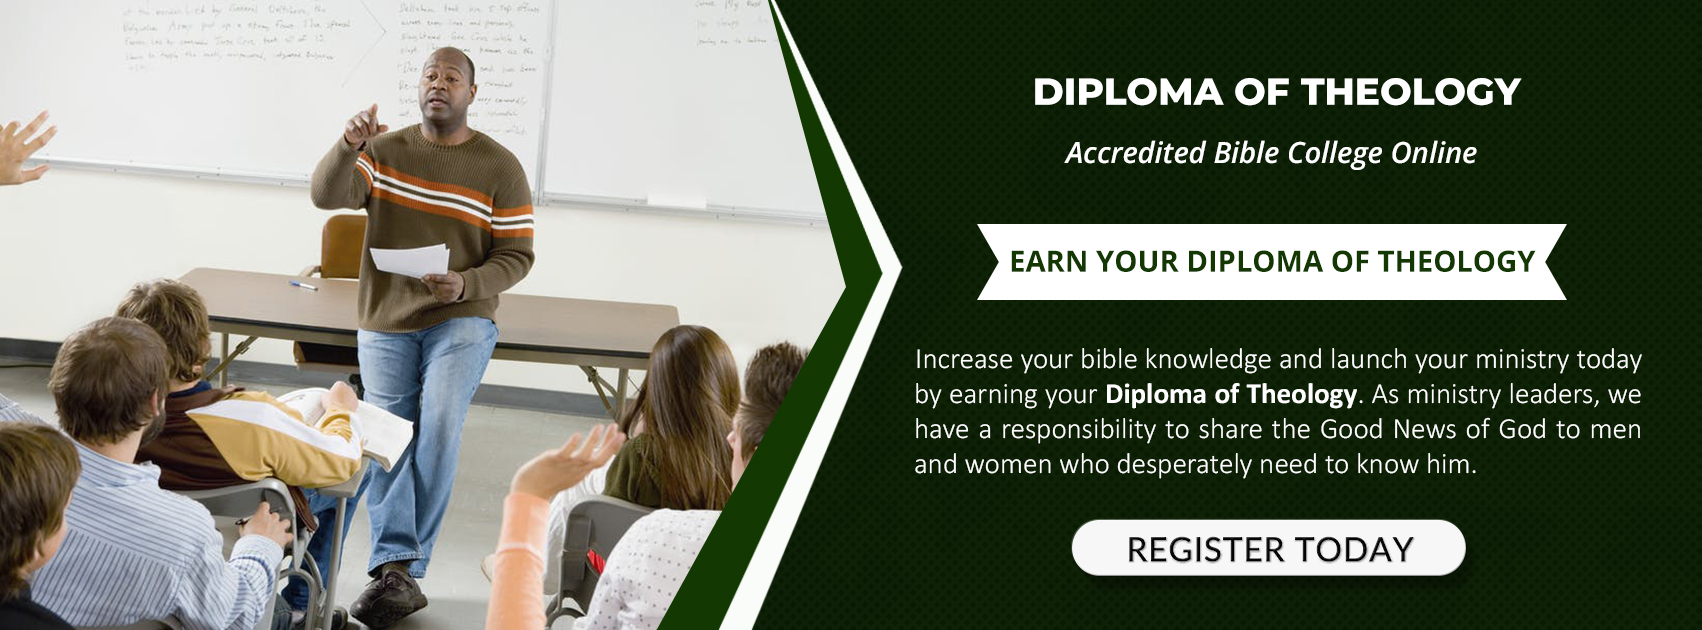 Diploma of Theology_Bible College Banner.jpg